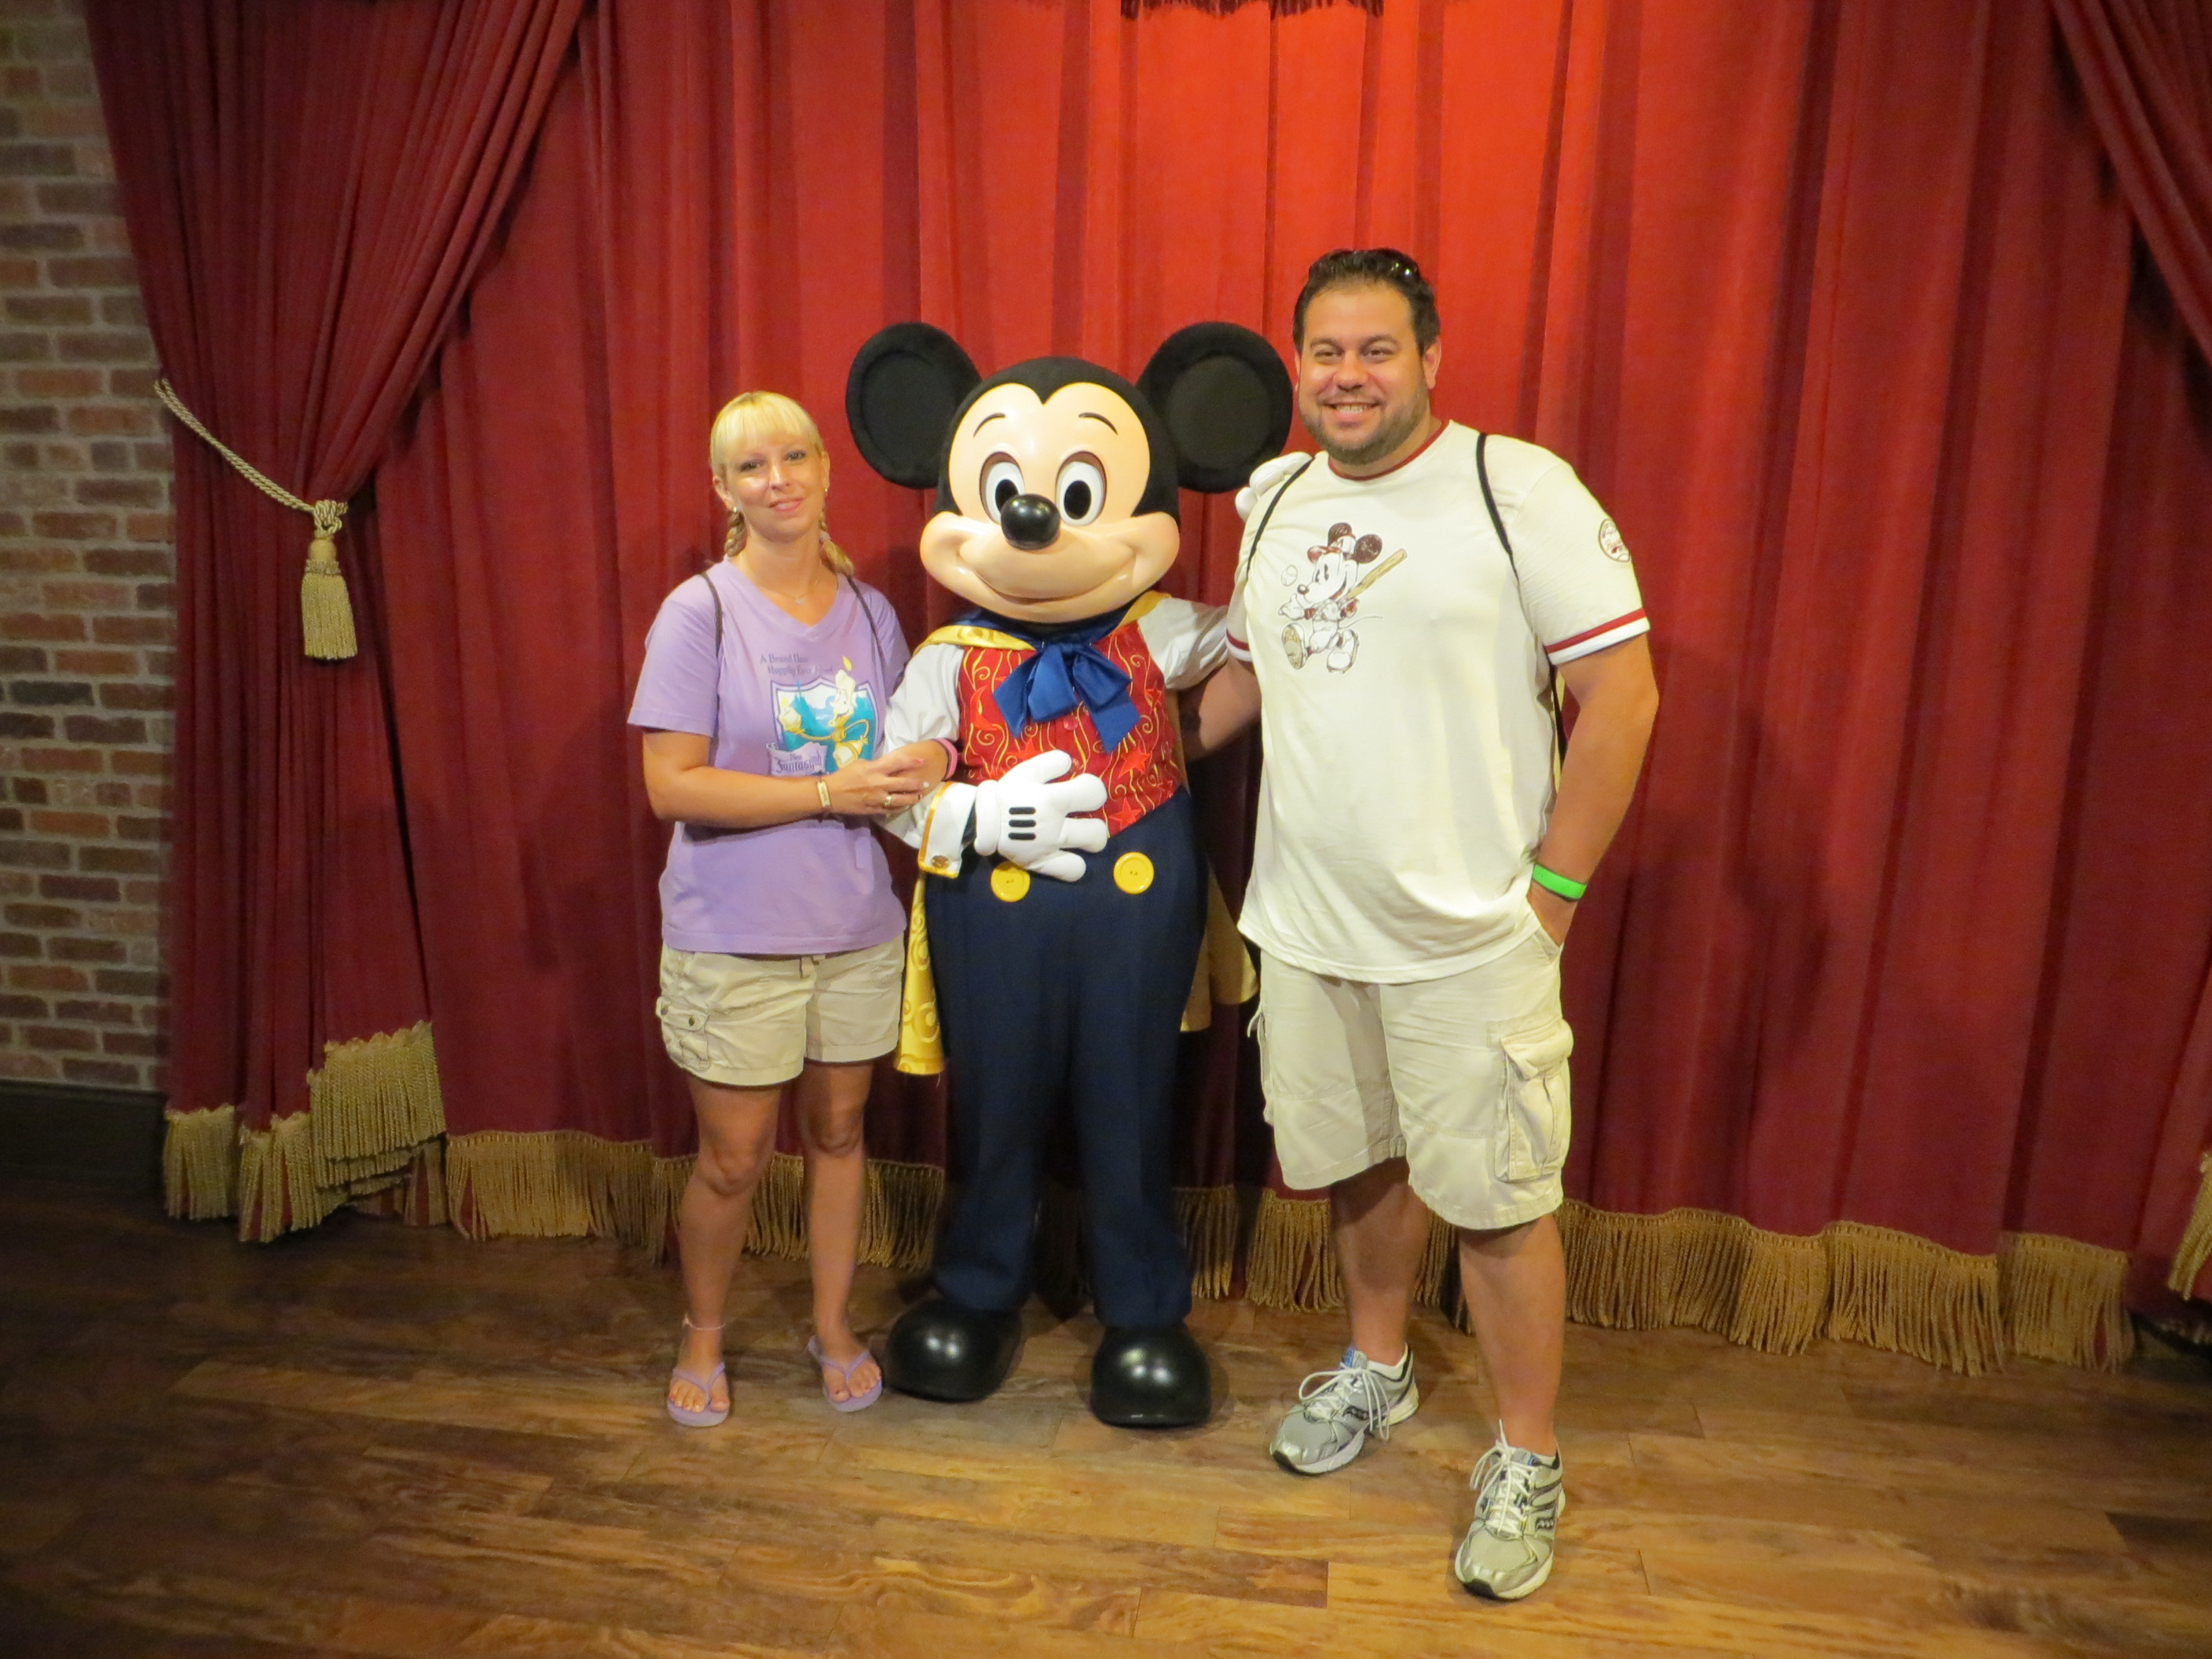 Talking Magician Mickey at Disney World's Magic Kingdom